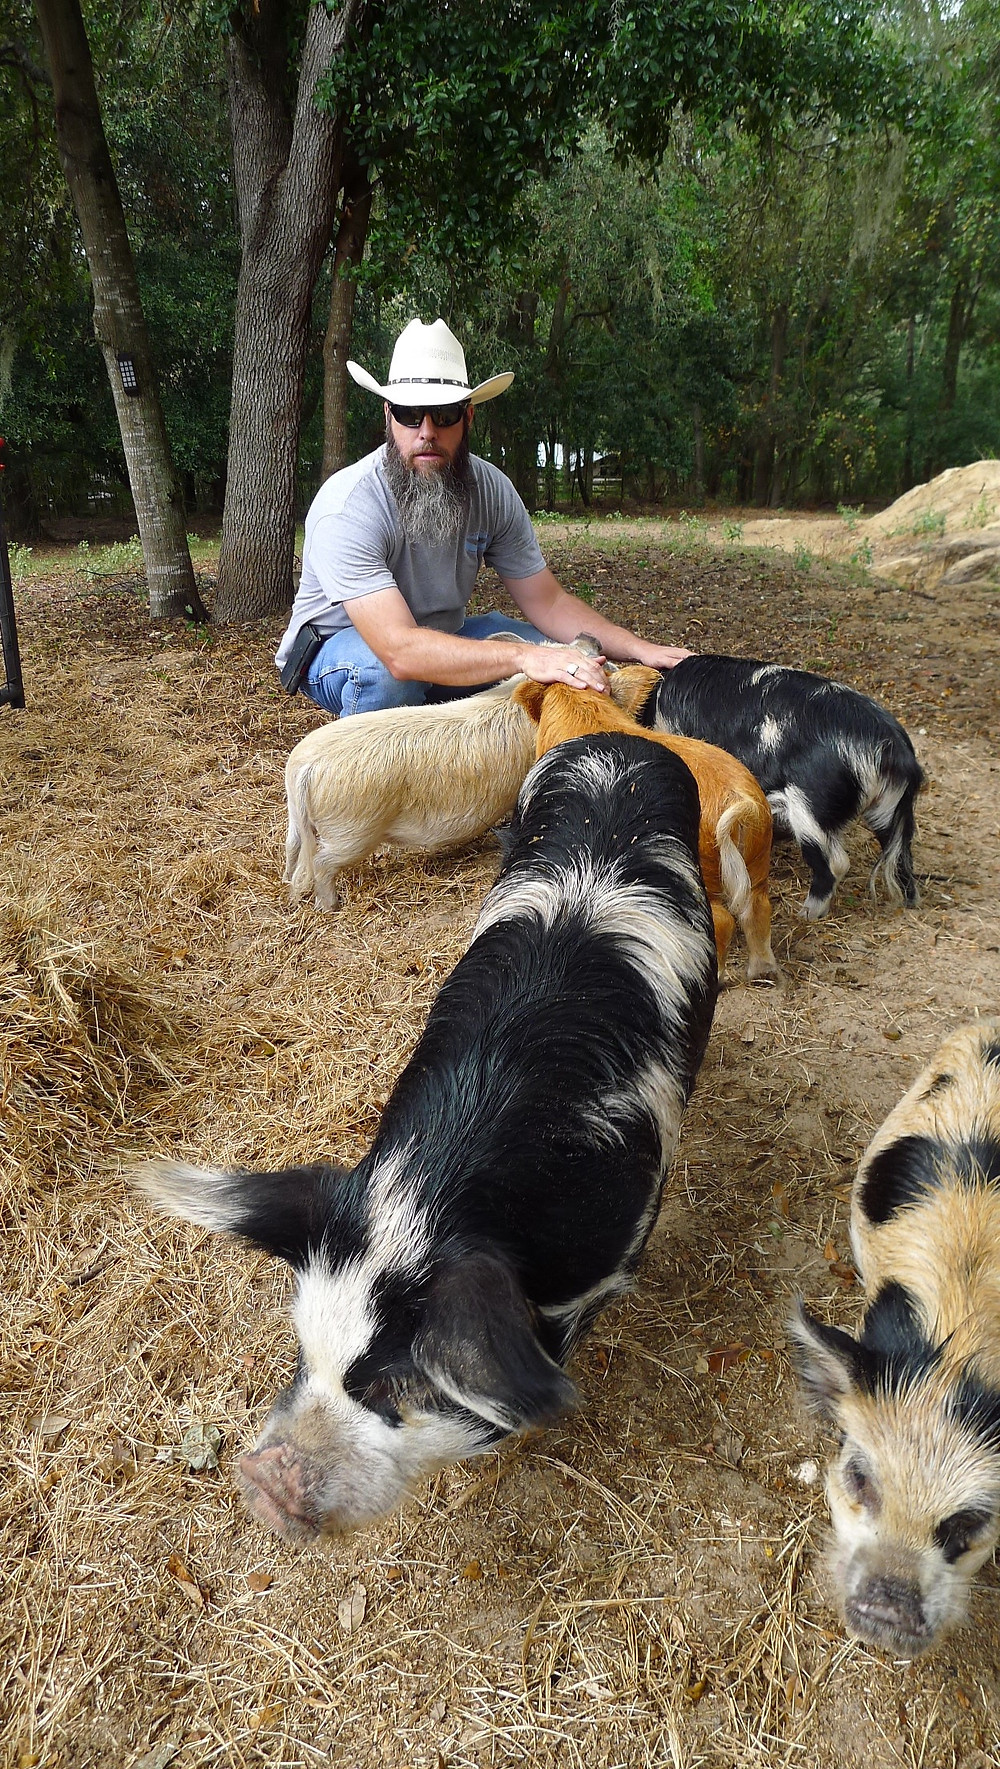 Nathan with his Kunekune pigs.